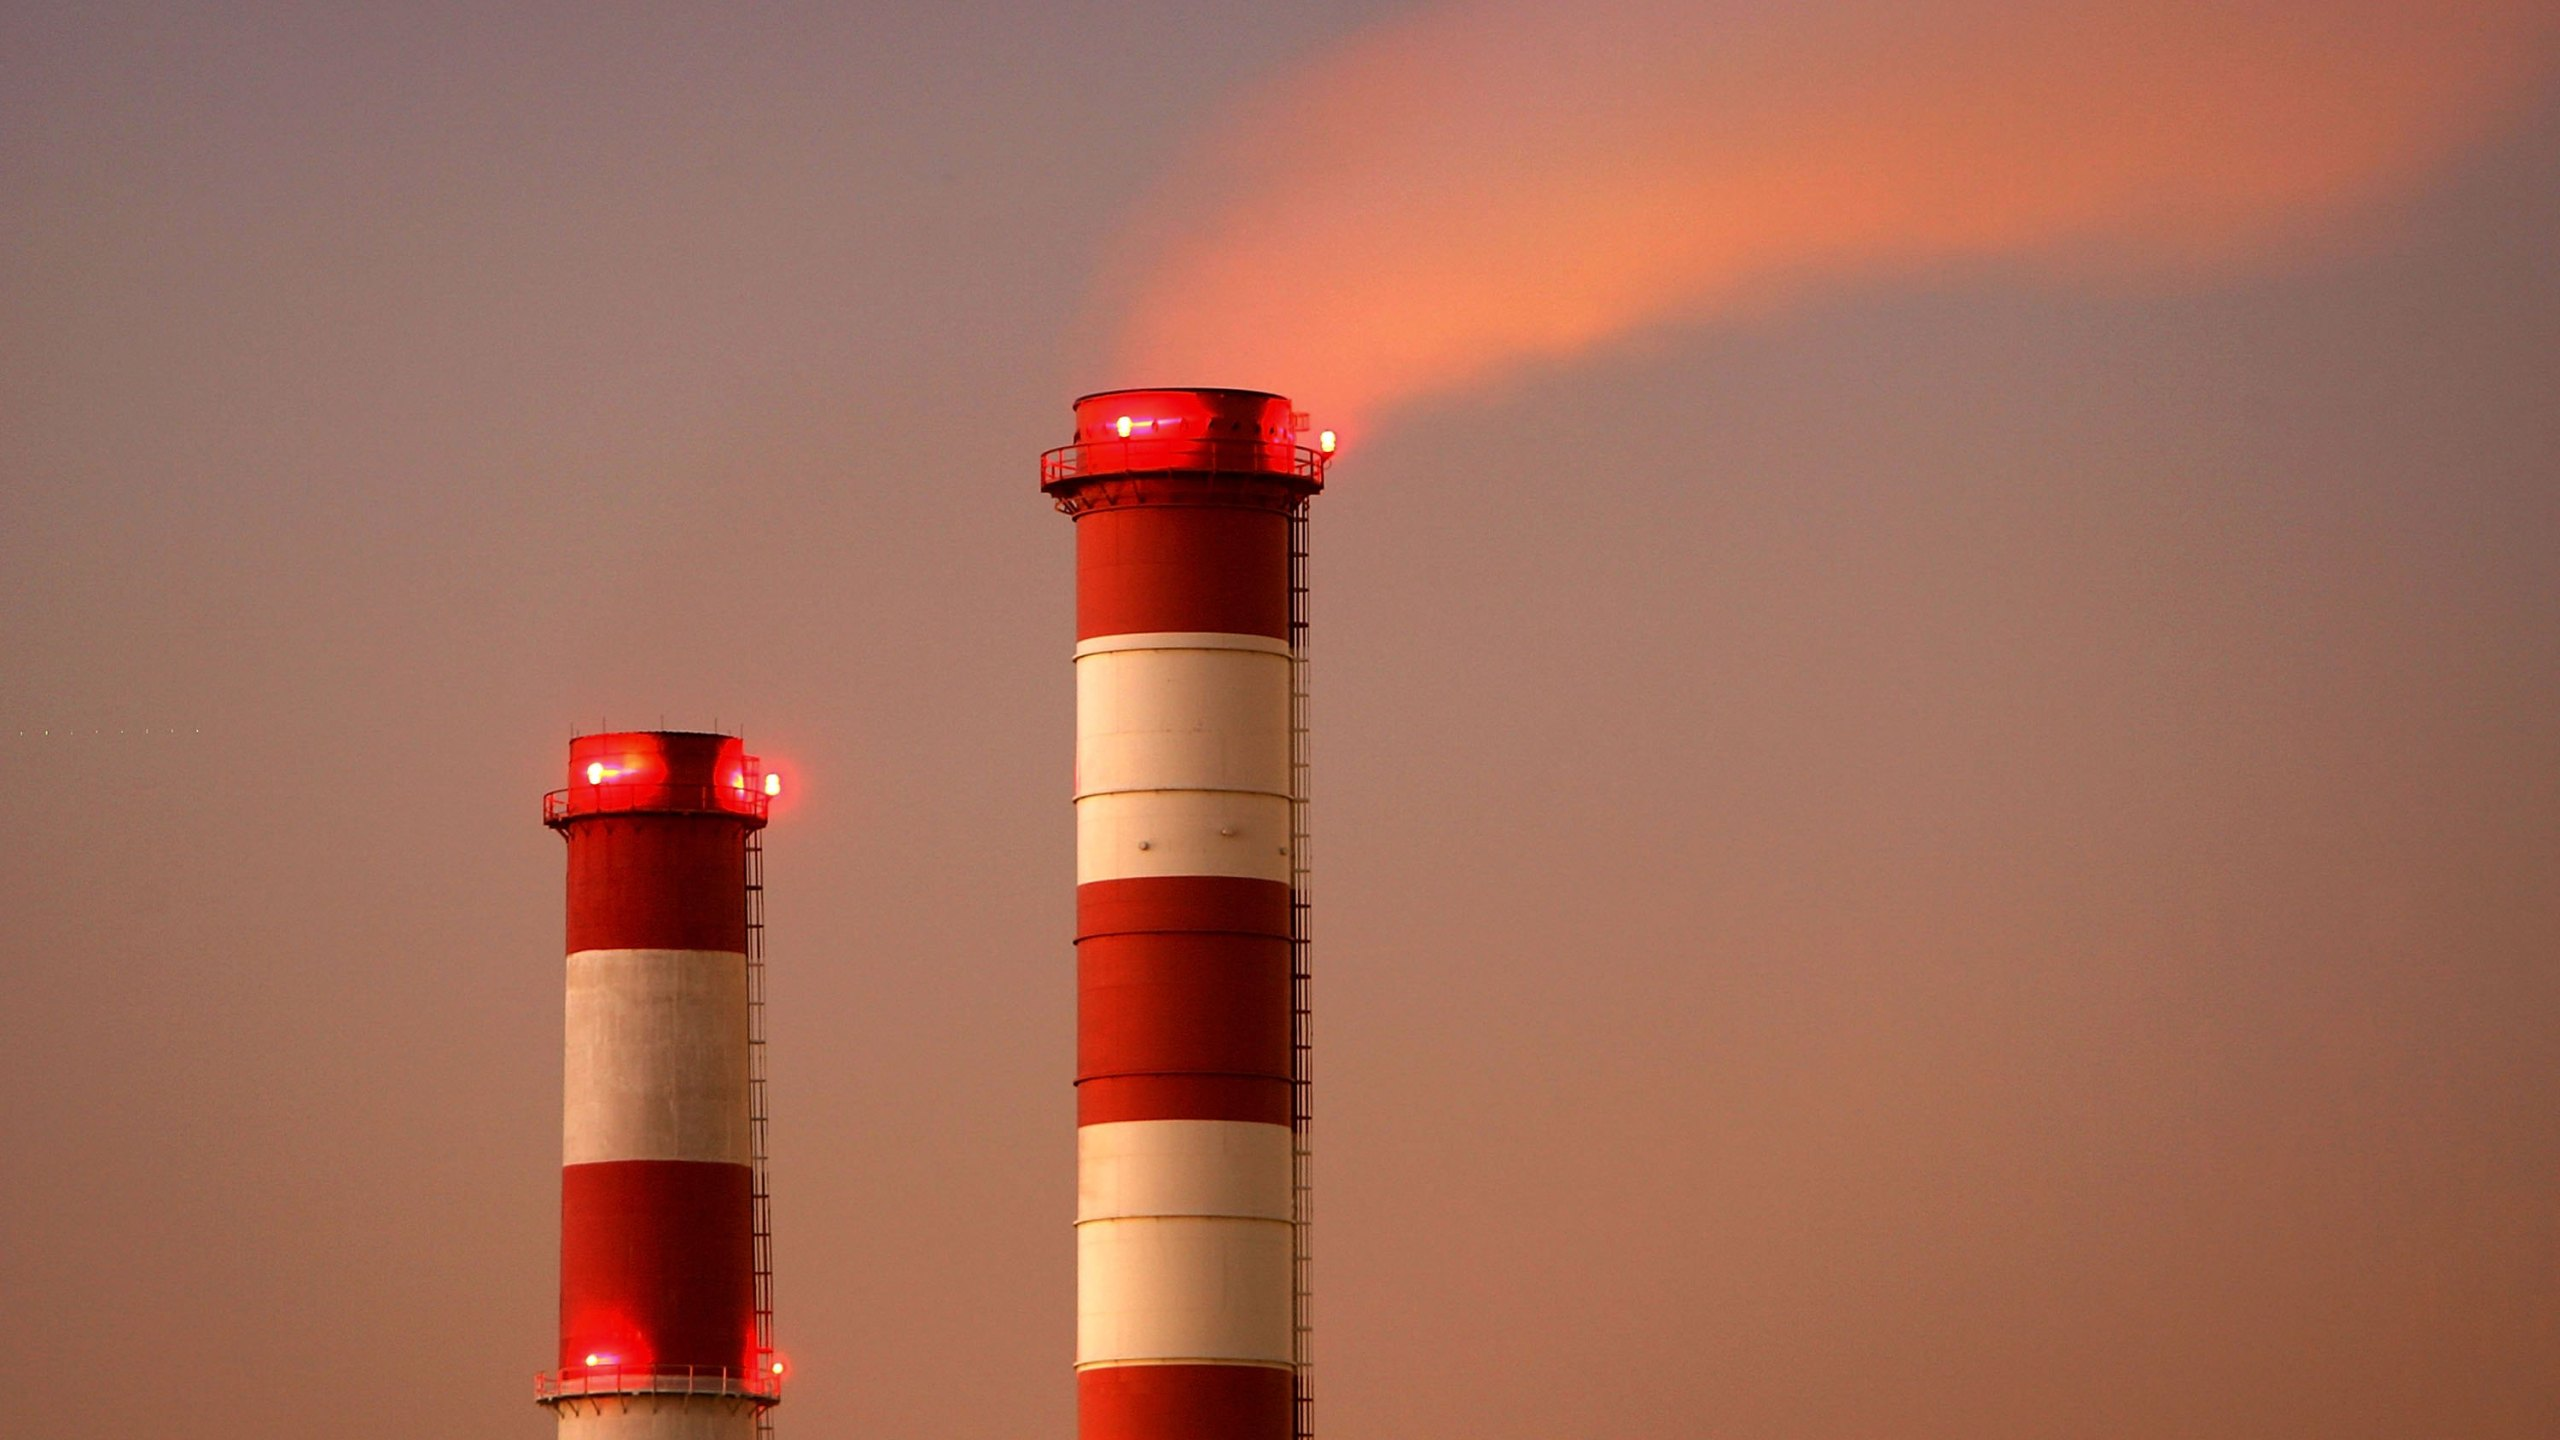 The Scattergood Power Plant near El Segundo operates after sunset on Nov. 29, 2006. (Credit: David McNew / Getty Images)